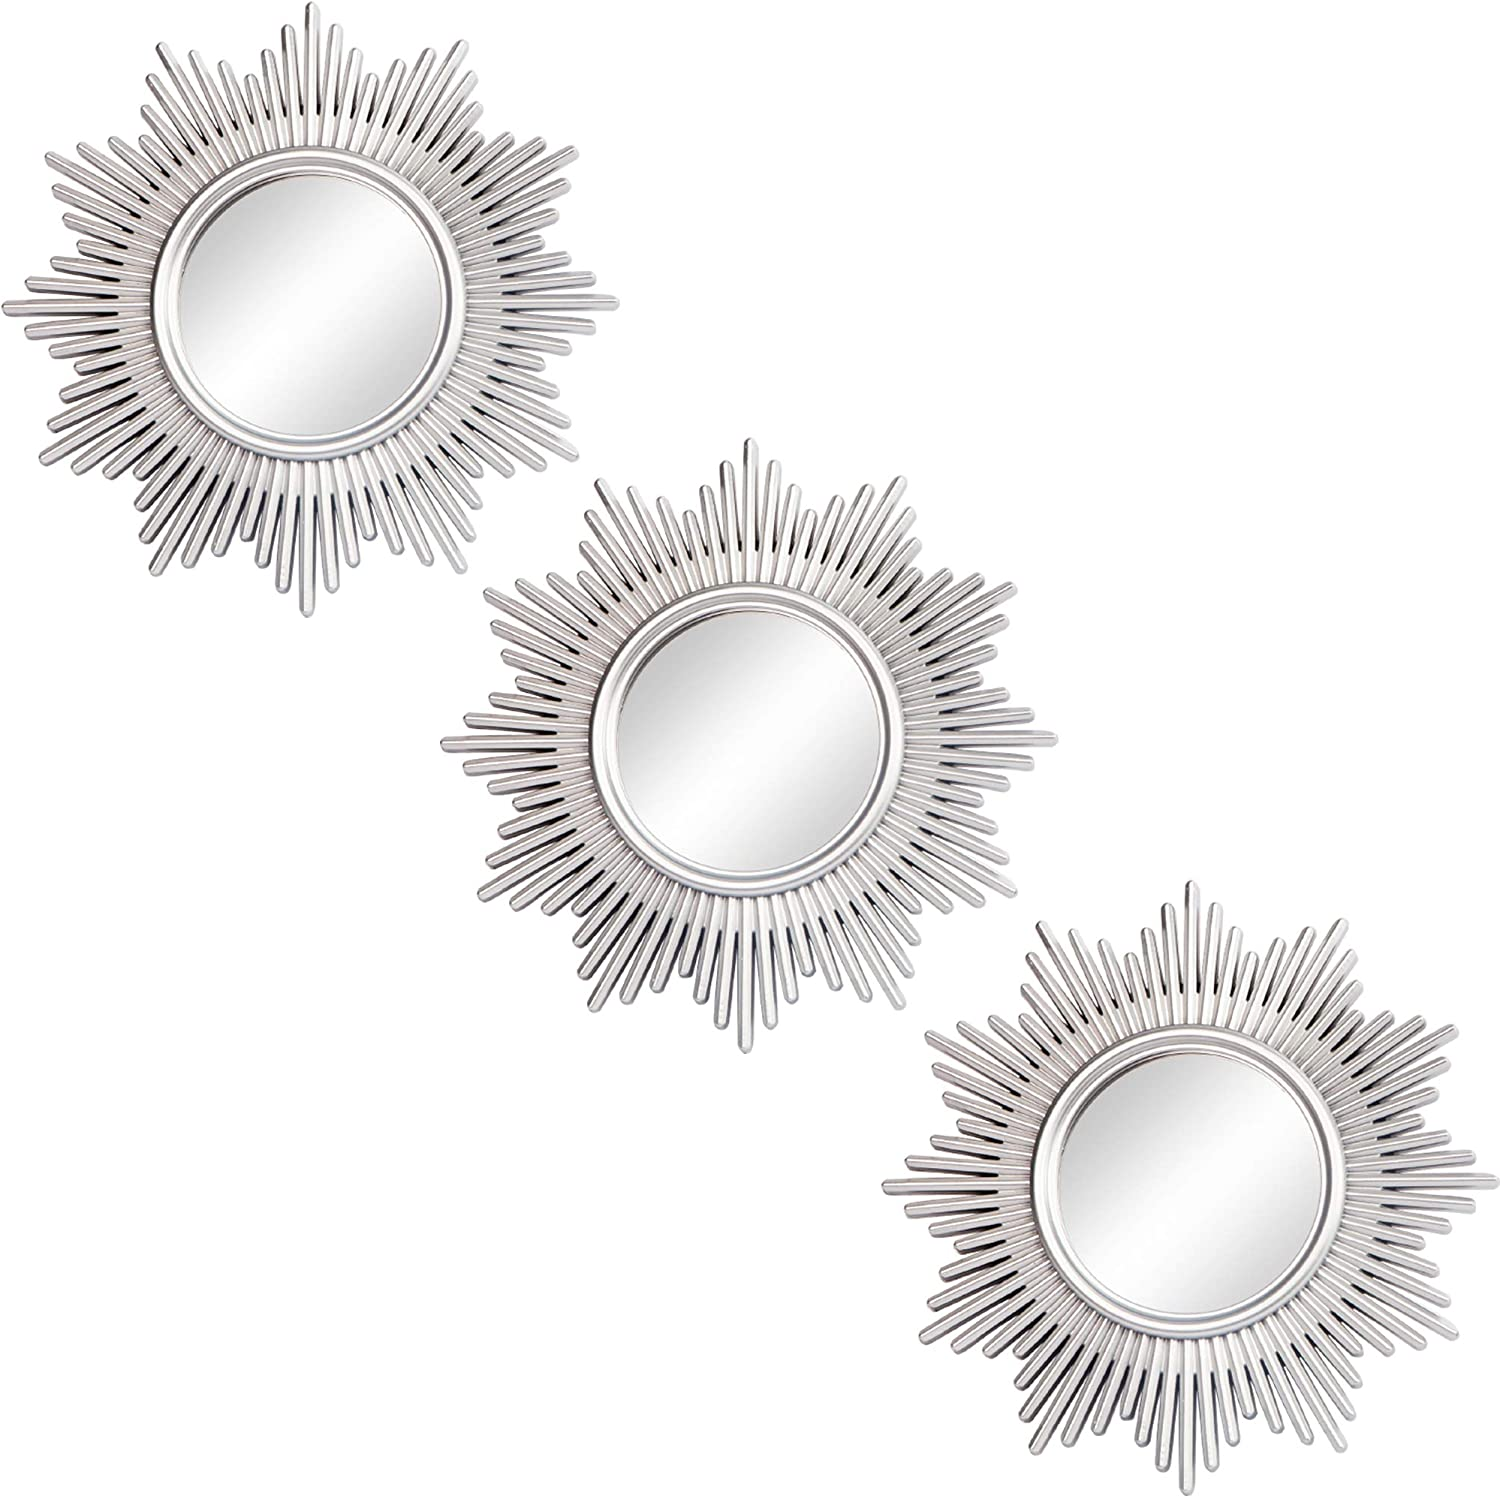 Small Round Decor Wall Mirrors Set of 3 Home Accessories for Bedroom, Living Room & Dinning Room (MS013)